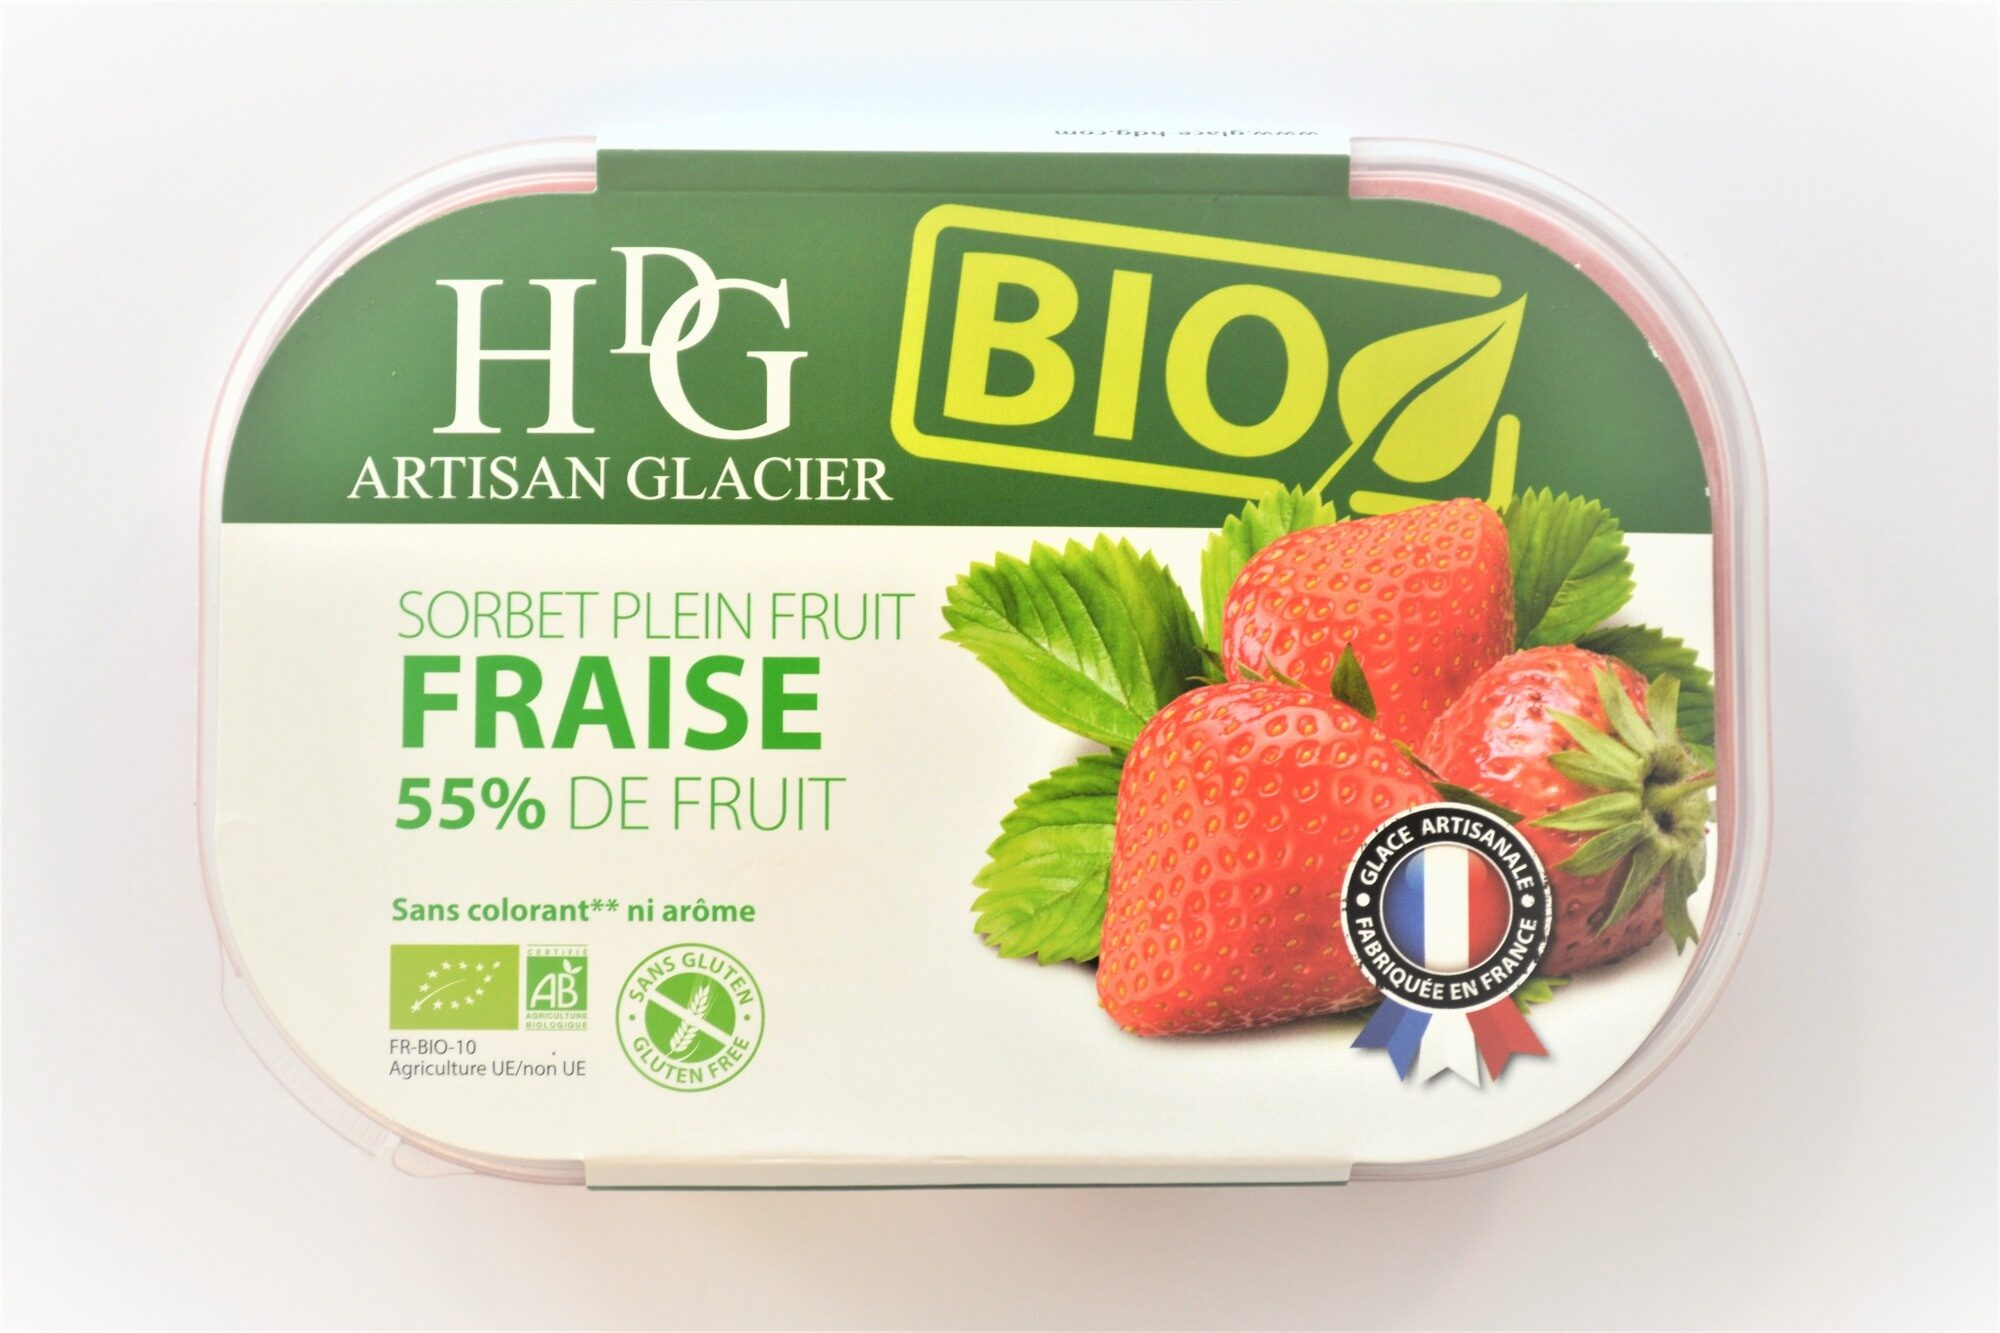 Sorbet plein fruit FRAISE BIO, 55% de fruit - Product - fr